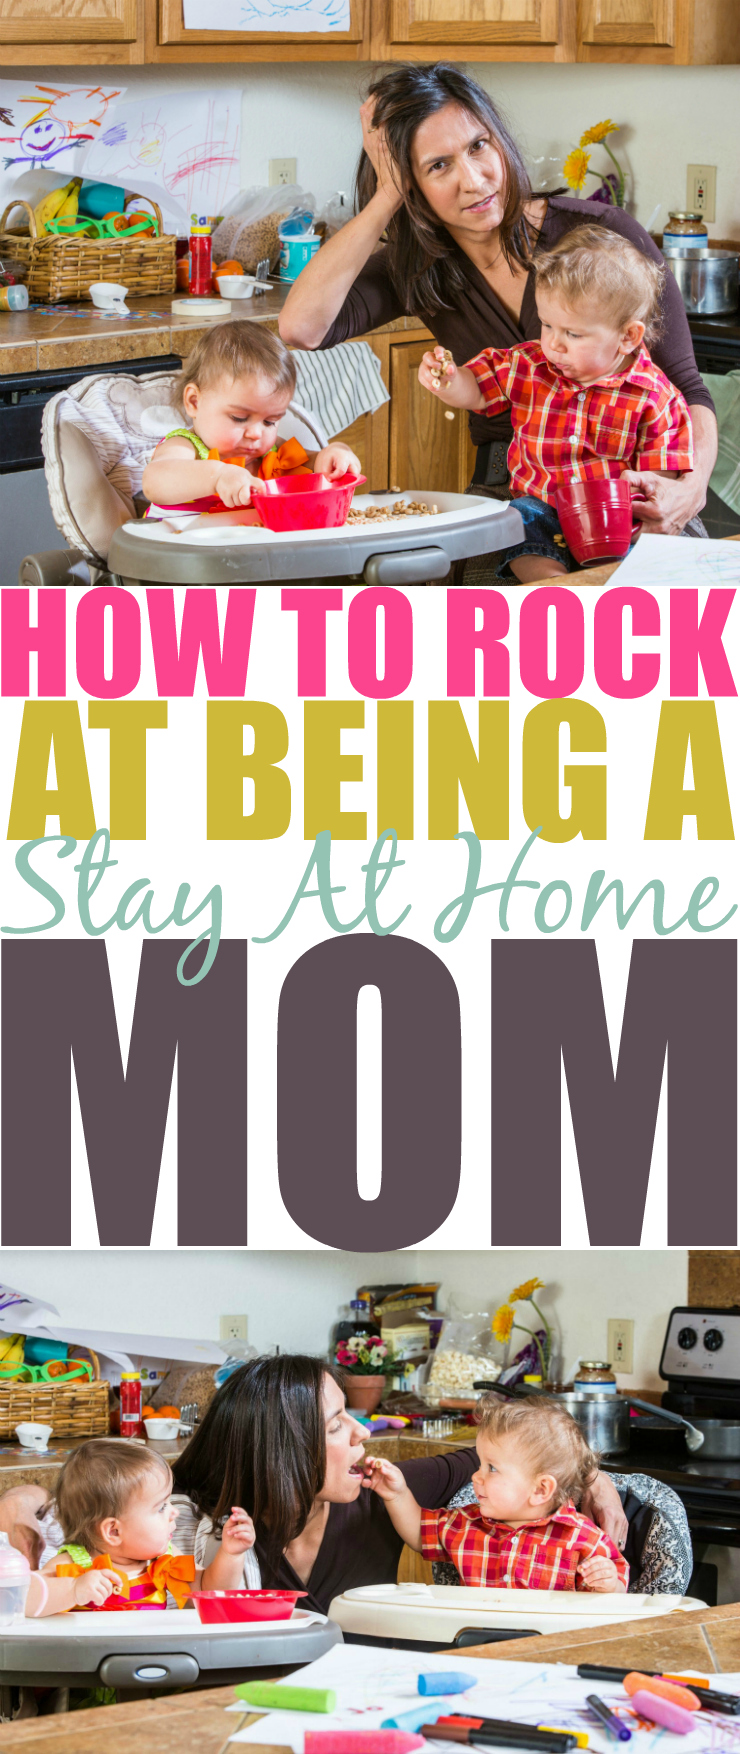 How To Rock At Being A Stay At Home Mom